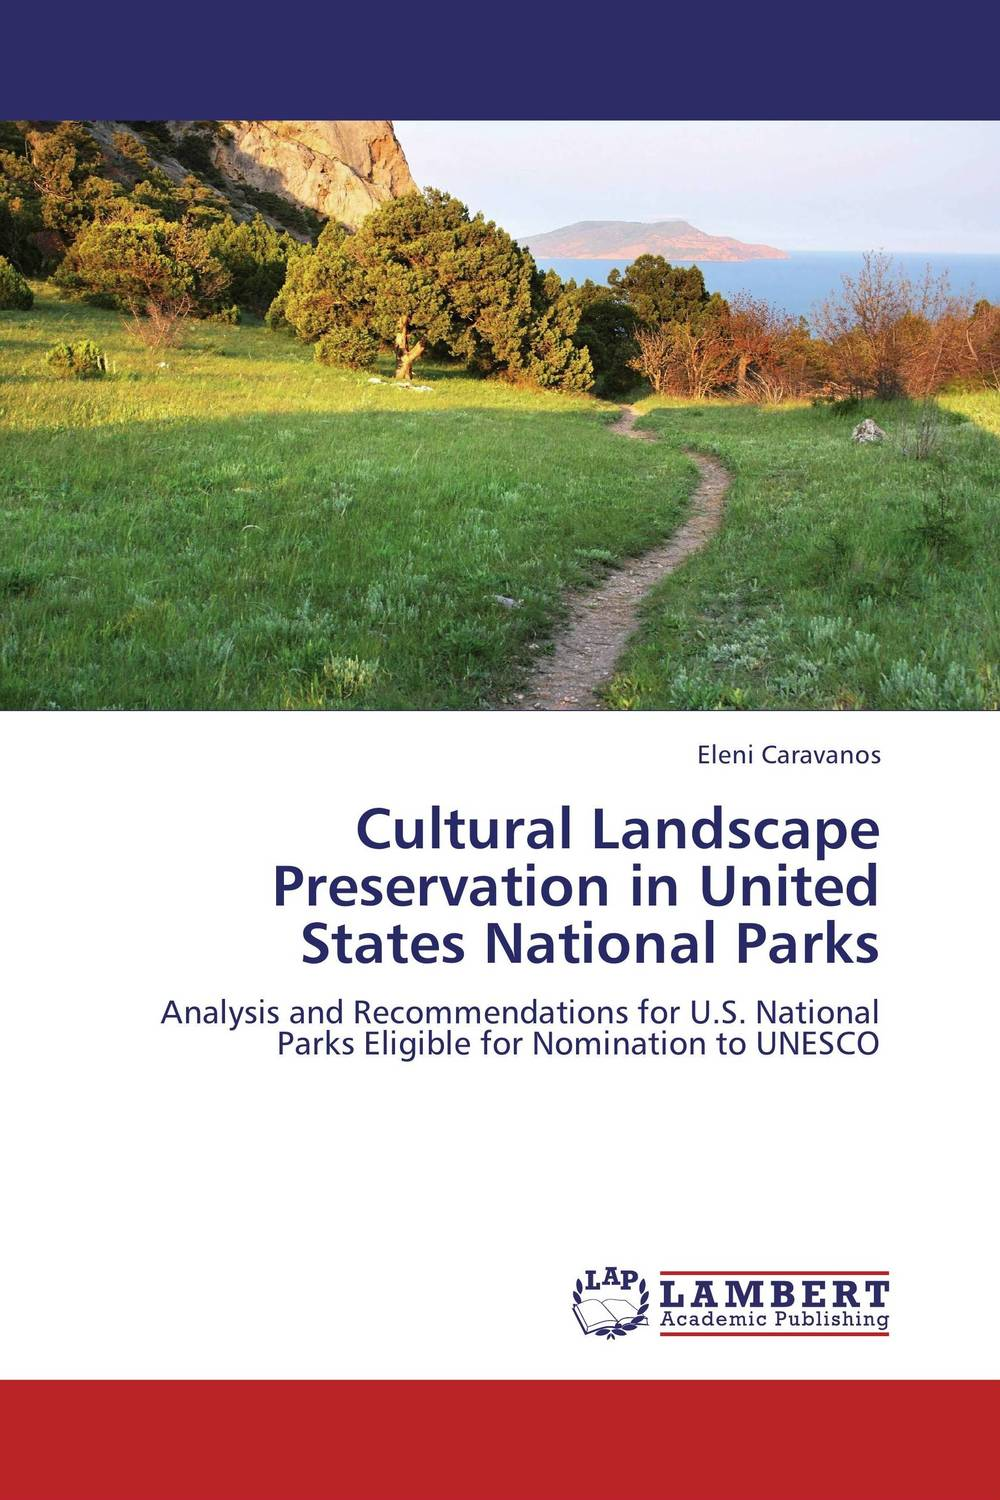 Cultural Landscape Preservation in United States National Parks